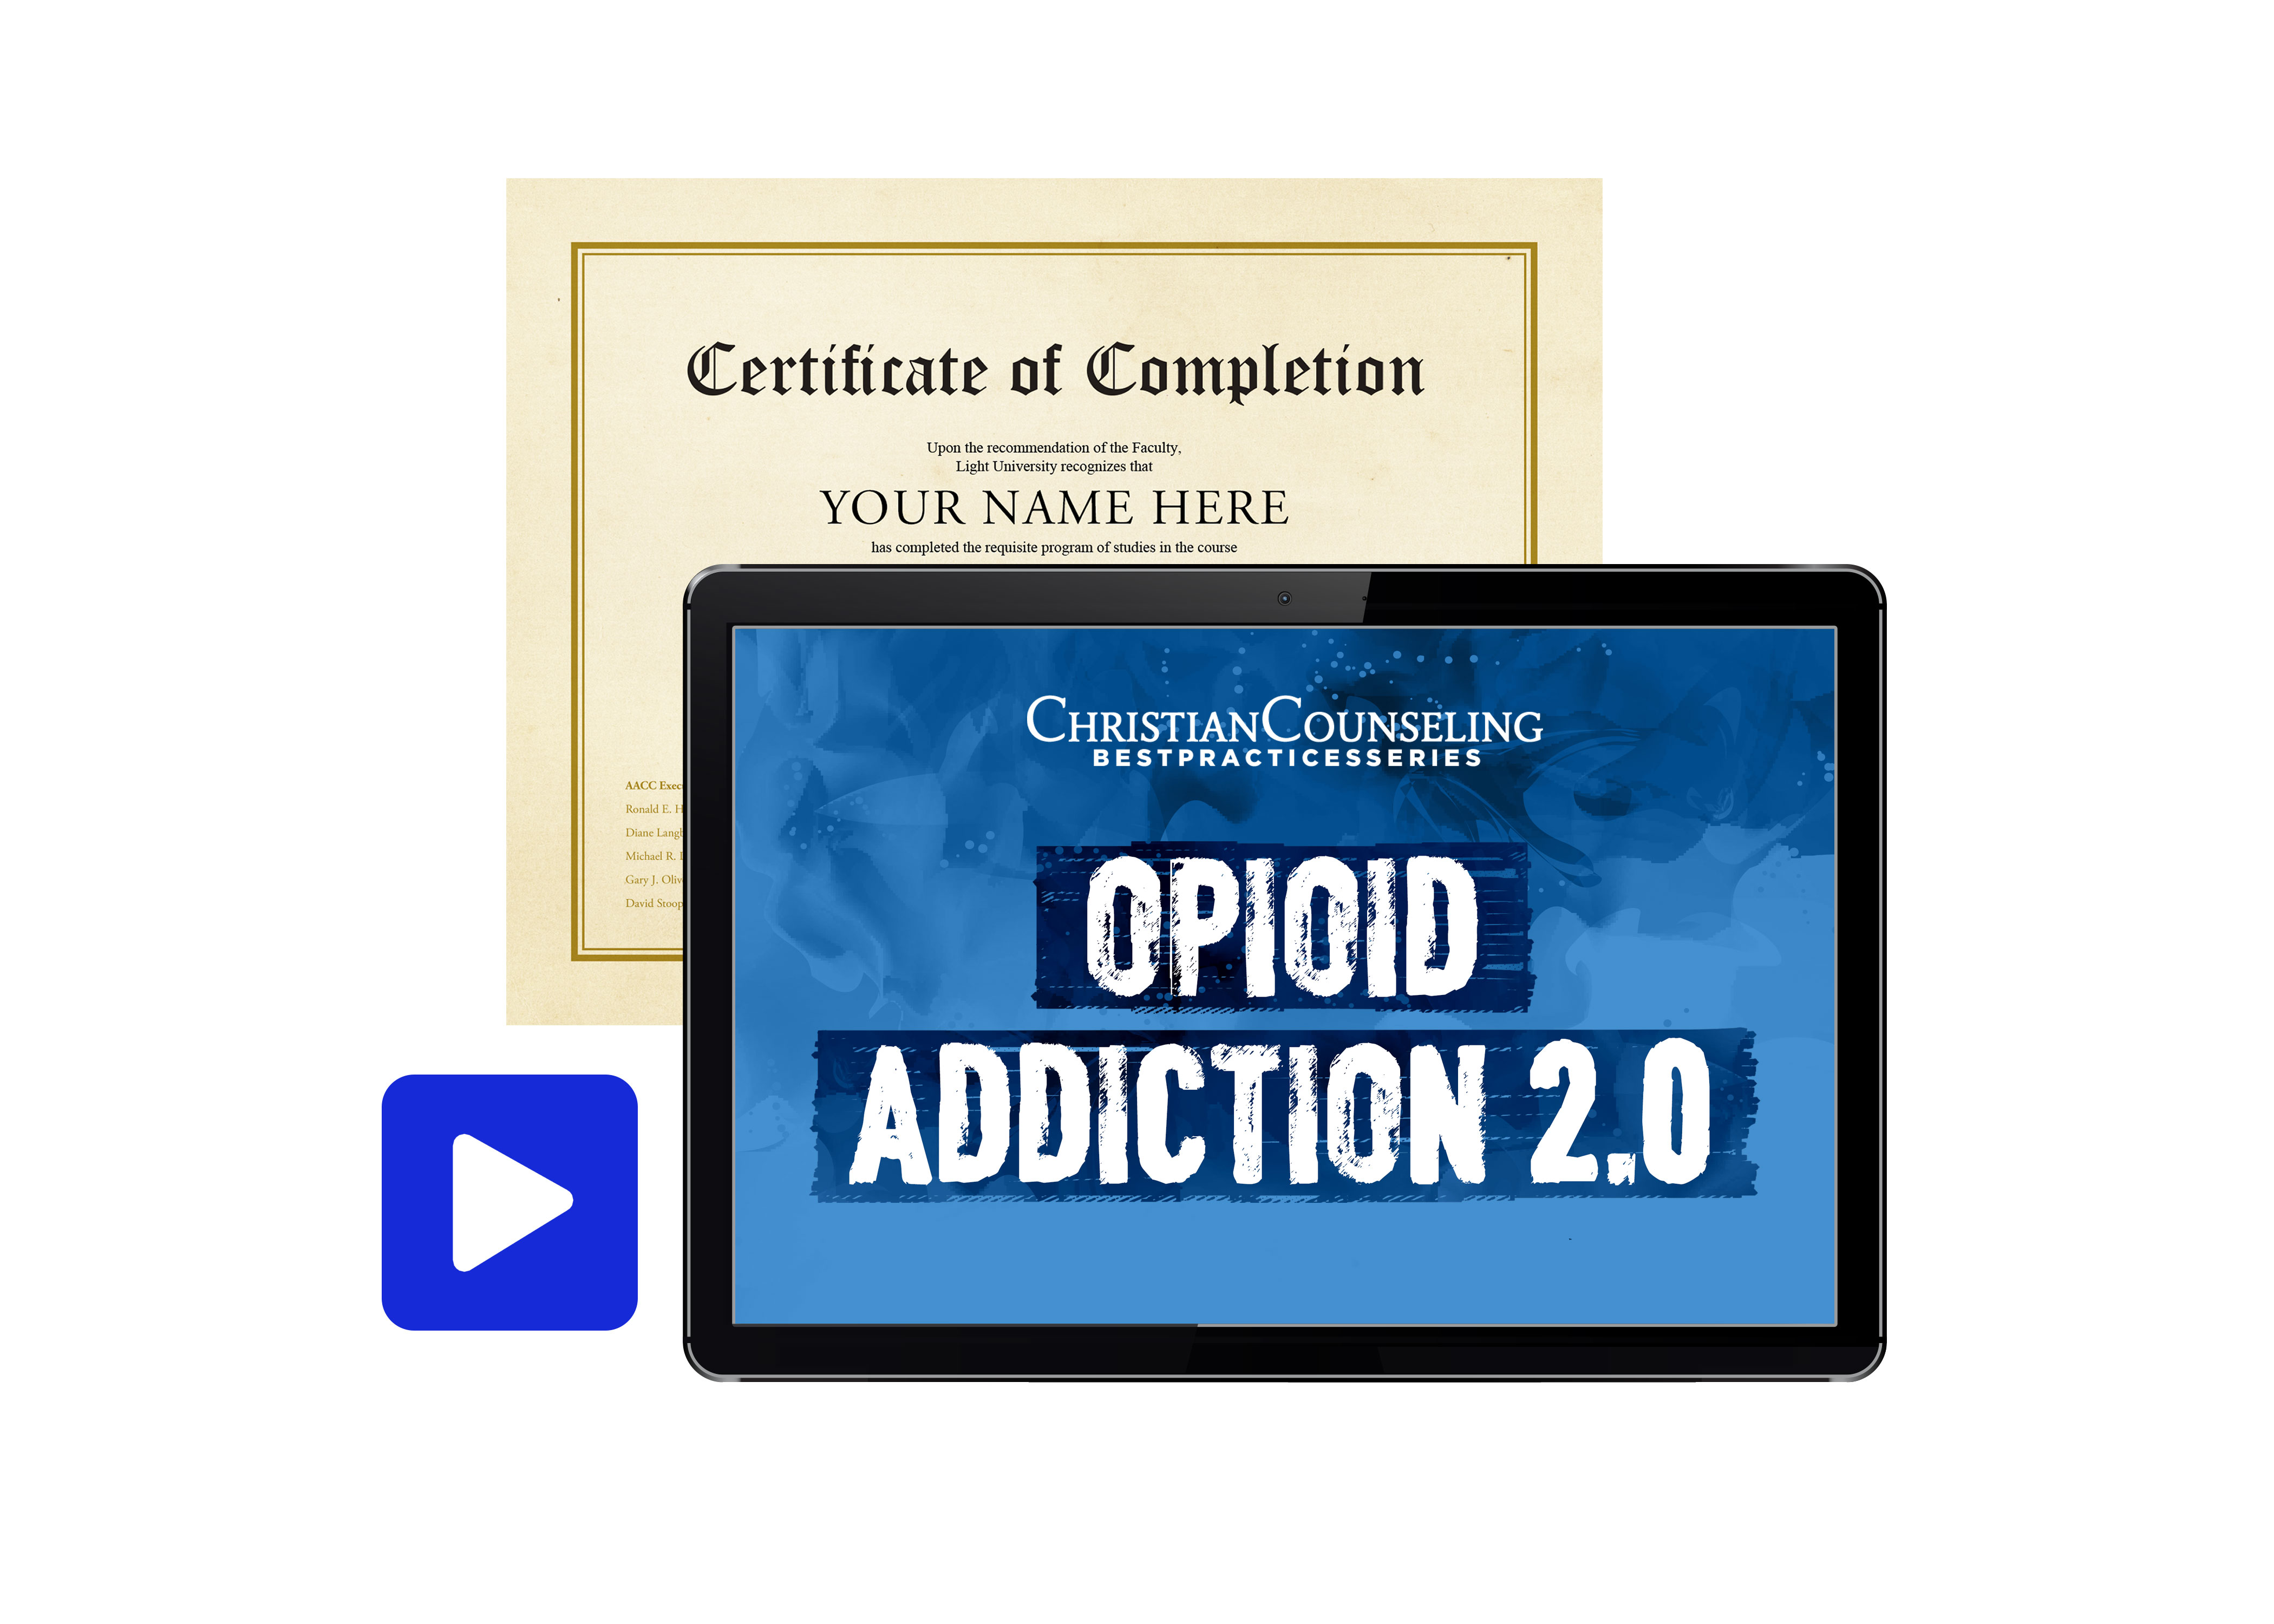 Opioid Addiction 2.0